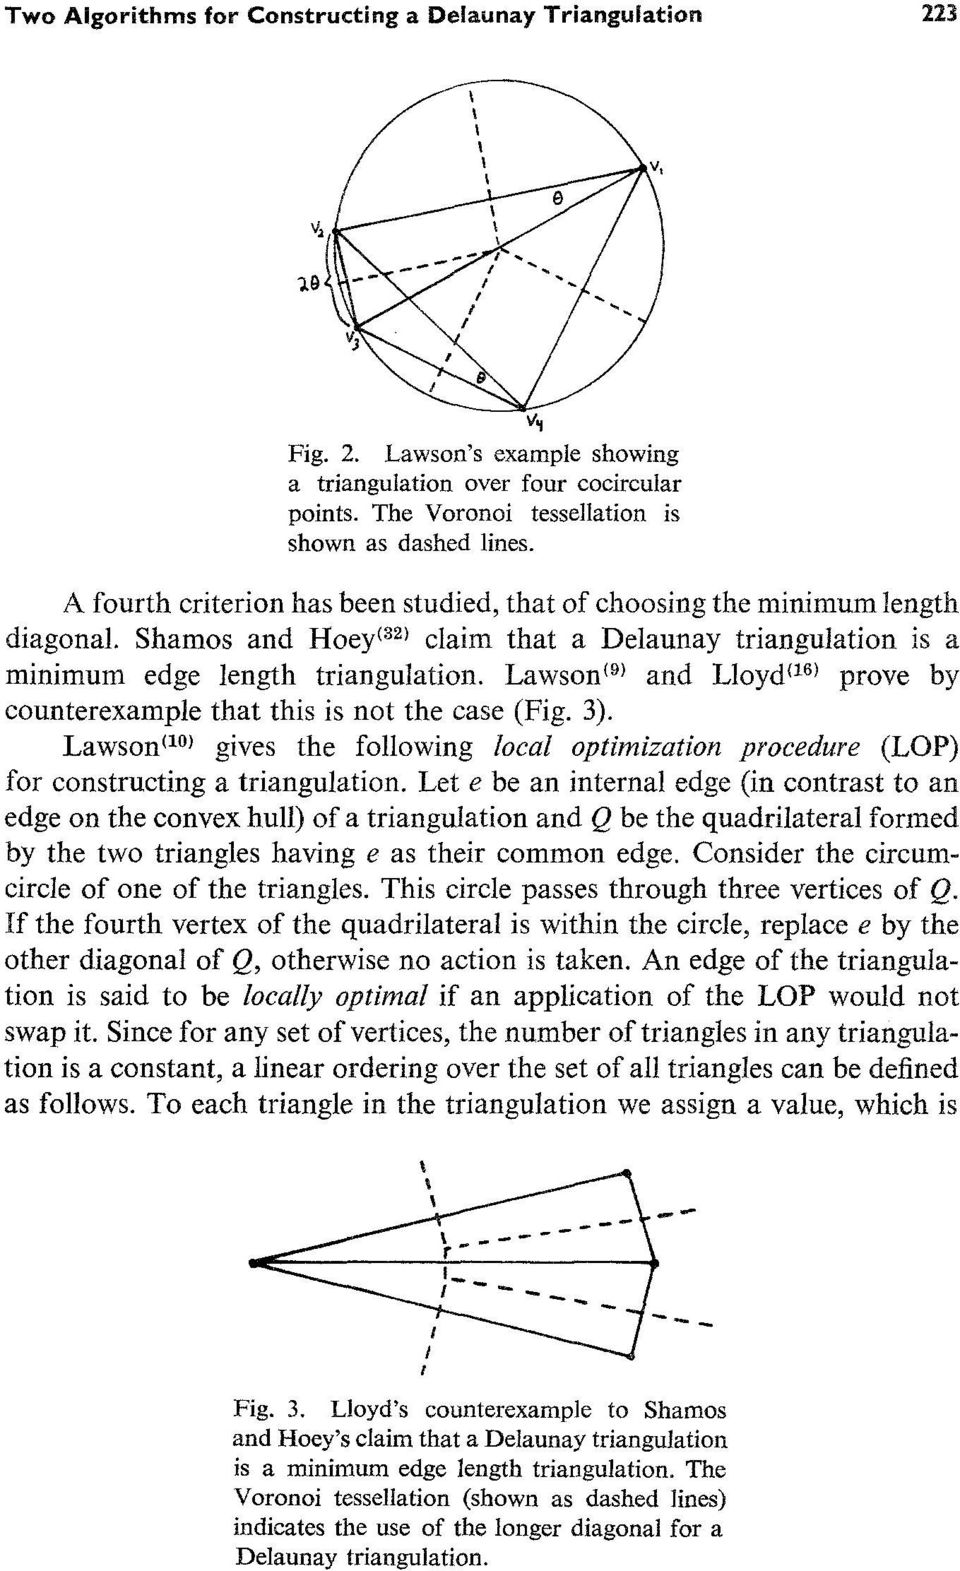 Lawson ~9) and Lloyd ~1~1 prove by counterexample that this is not the case (Fig. 3). Lawson a~ gives the following local optimization procedure (LOP) for constructing a triangulation.